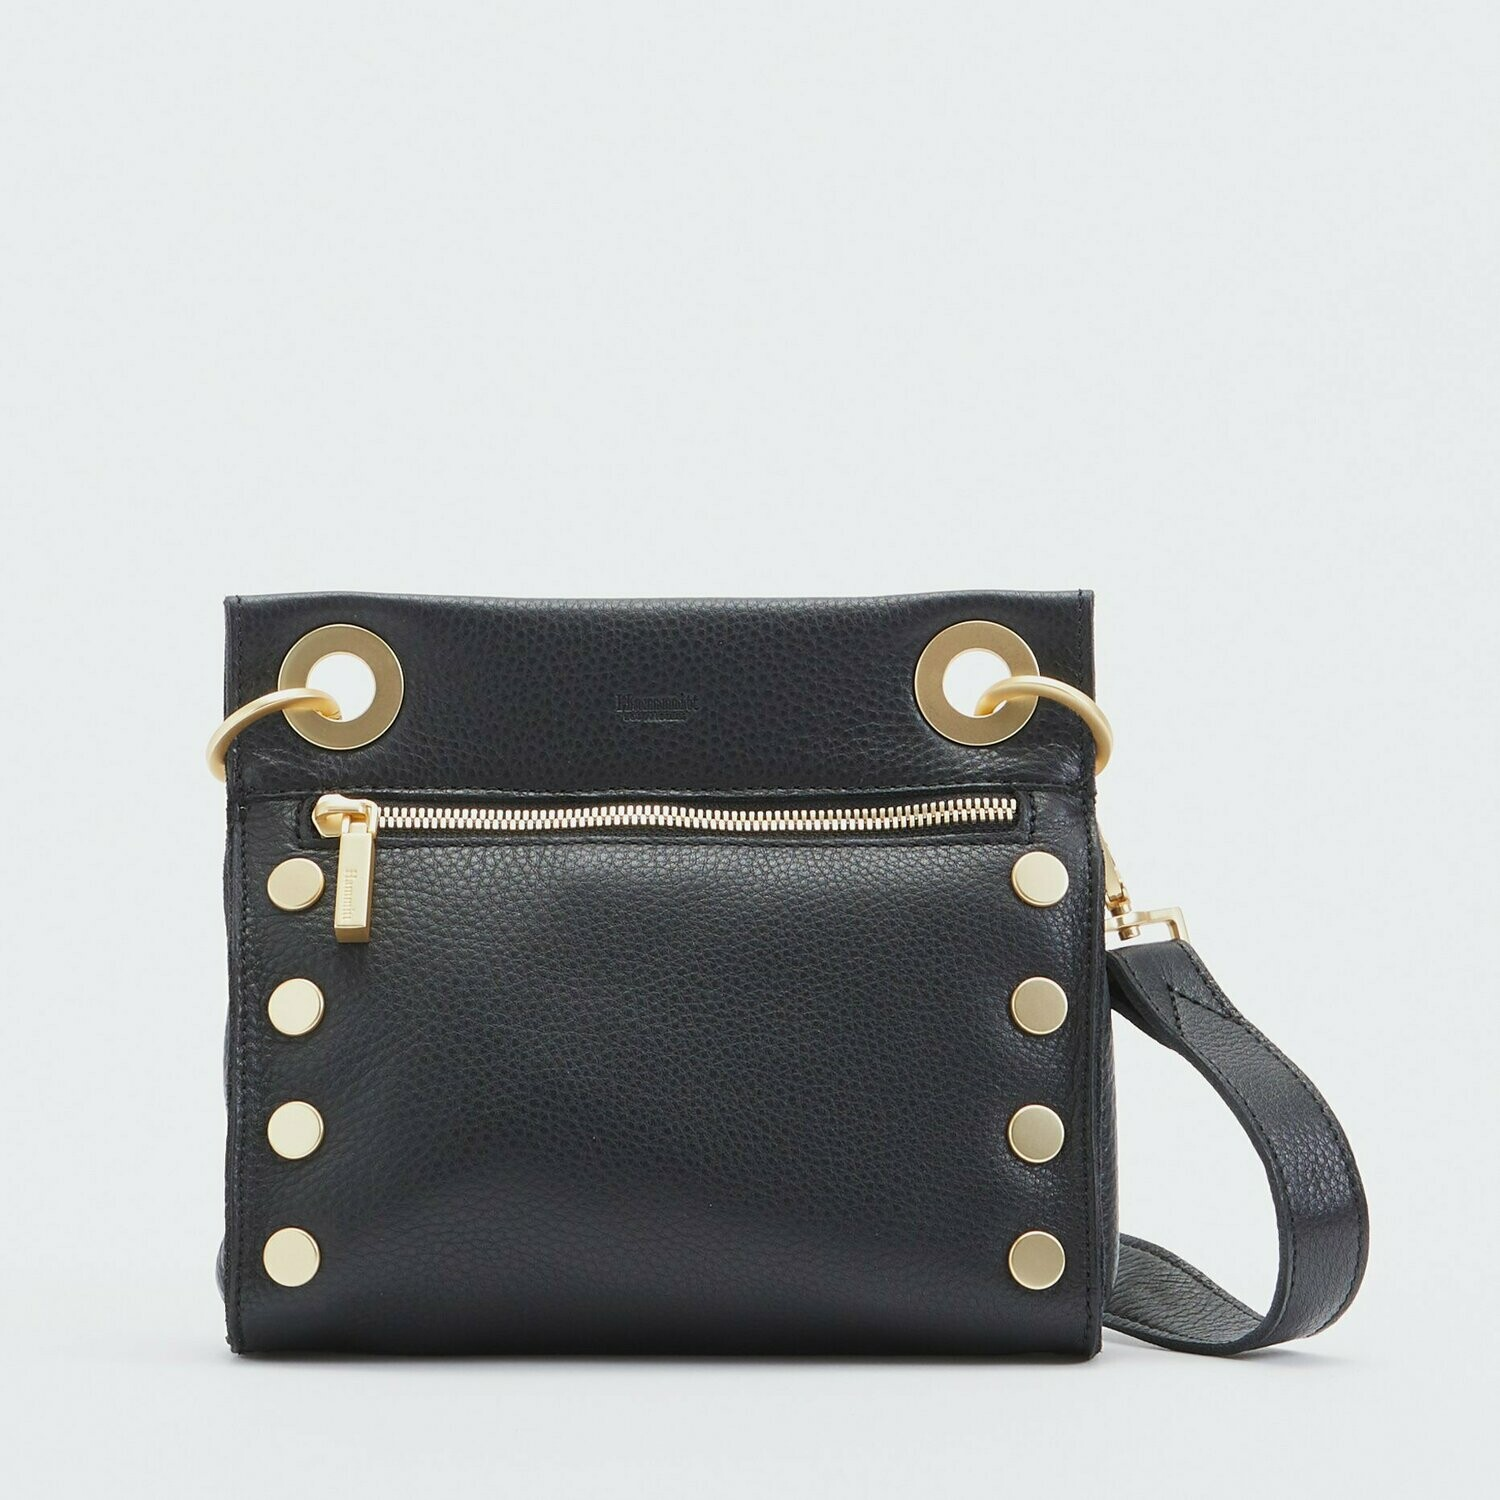 Hammitt Tony Small Black with Brushed Gold Hardware